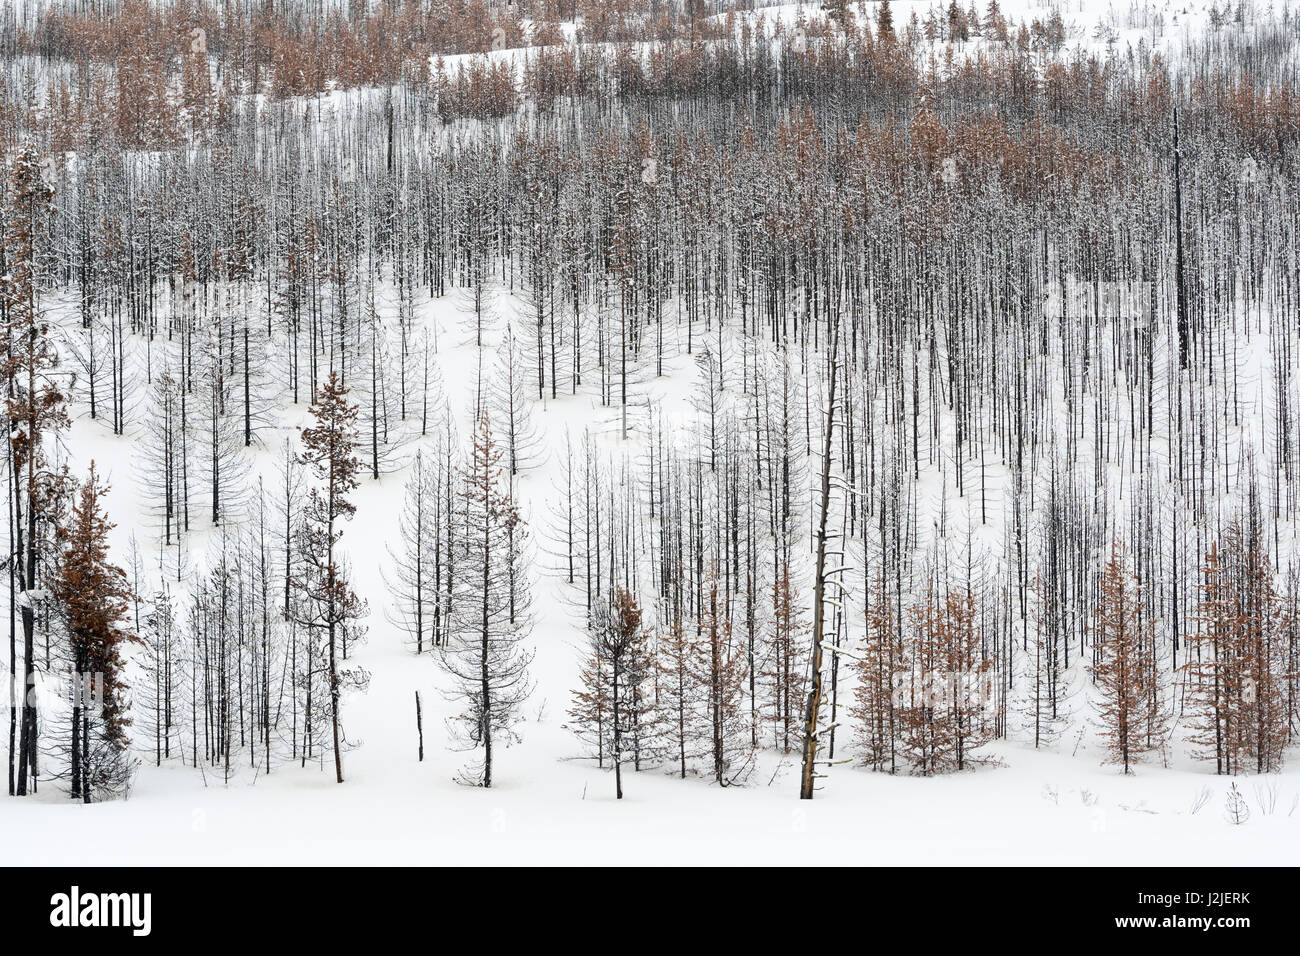 Dead forest, trees, woods in winter, nearly monochrome structures, Grand Teton National Park, Wyoming, USA. - Stock Image